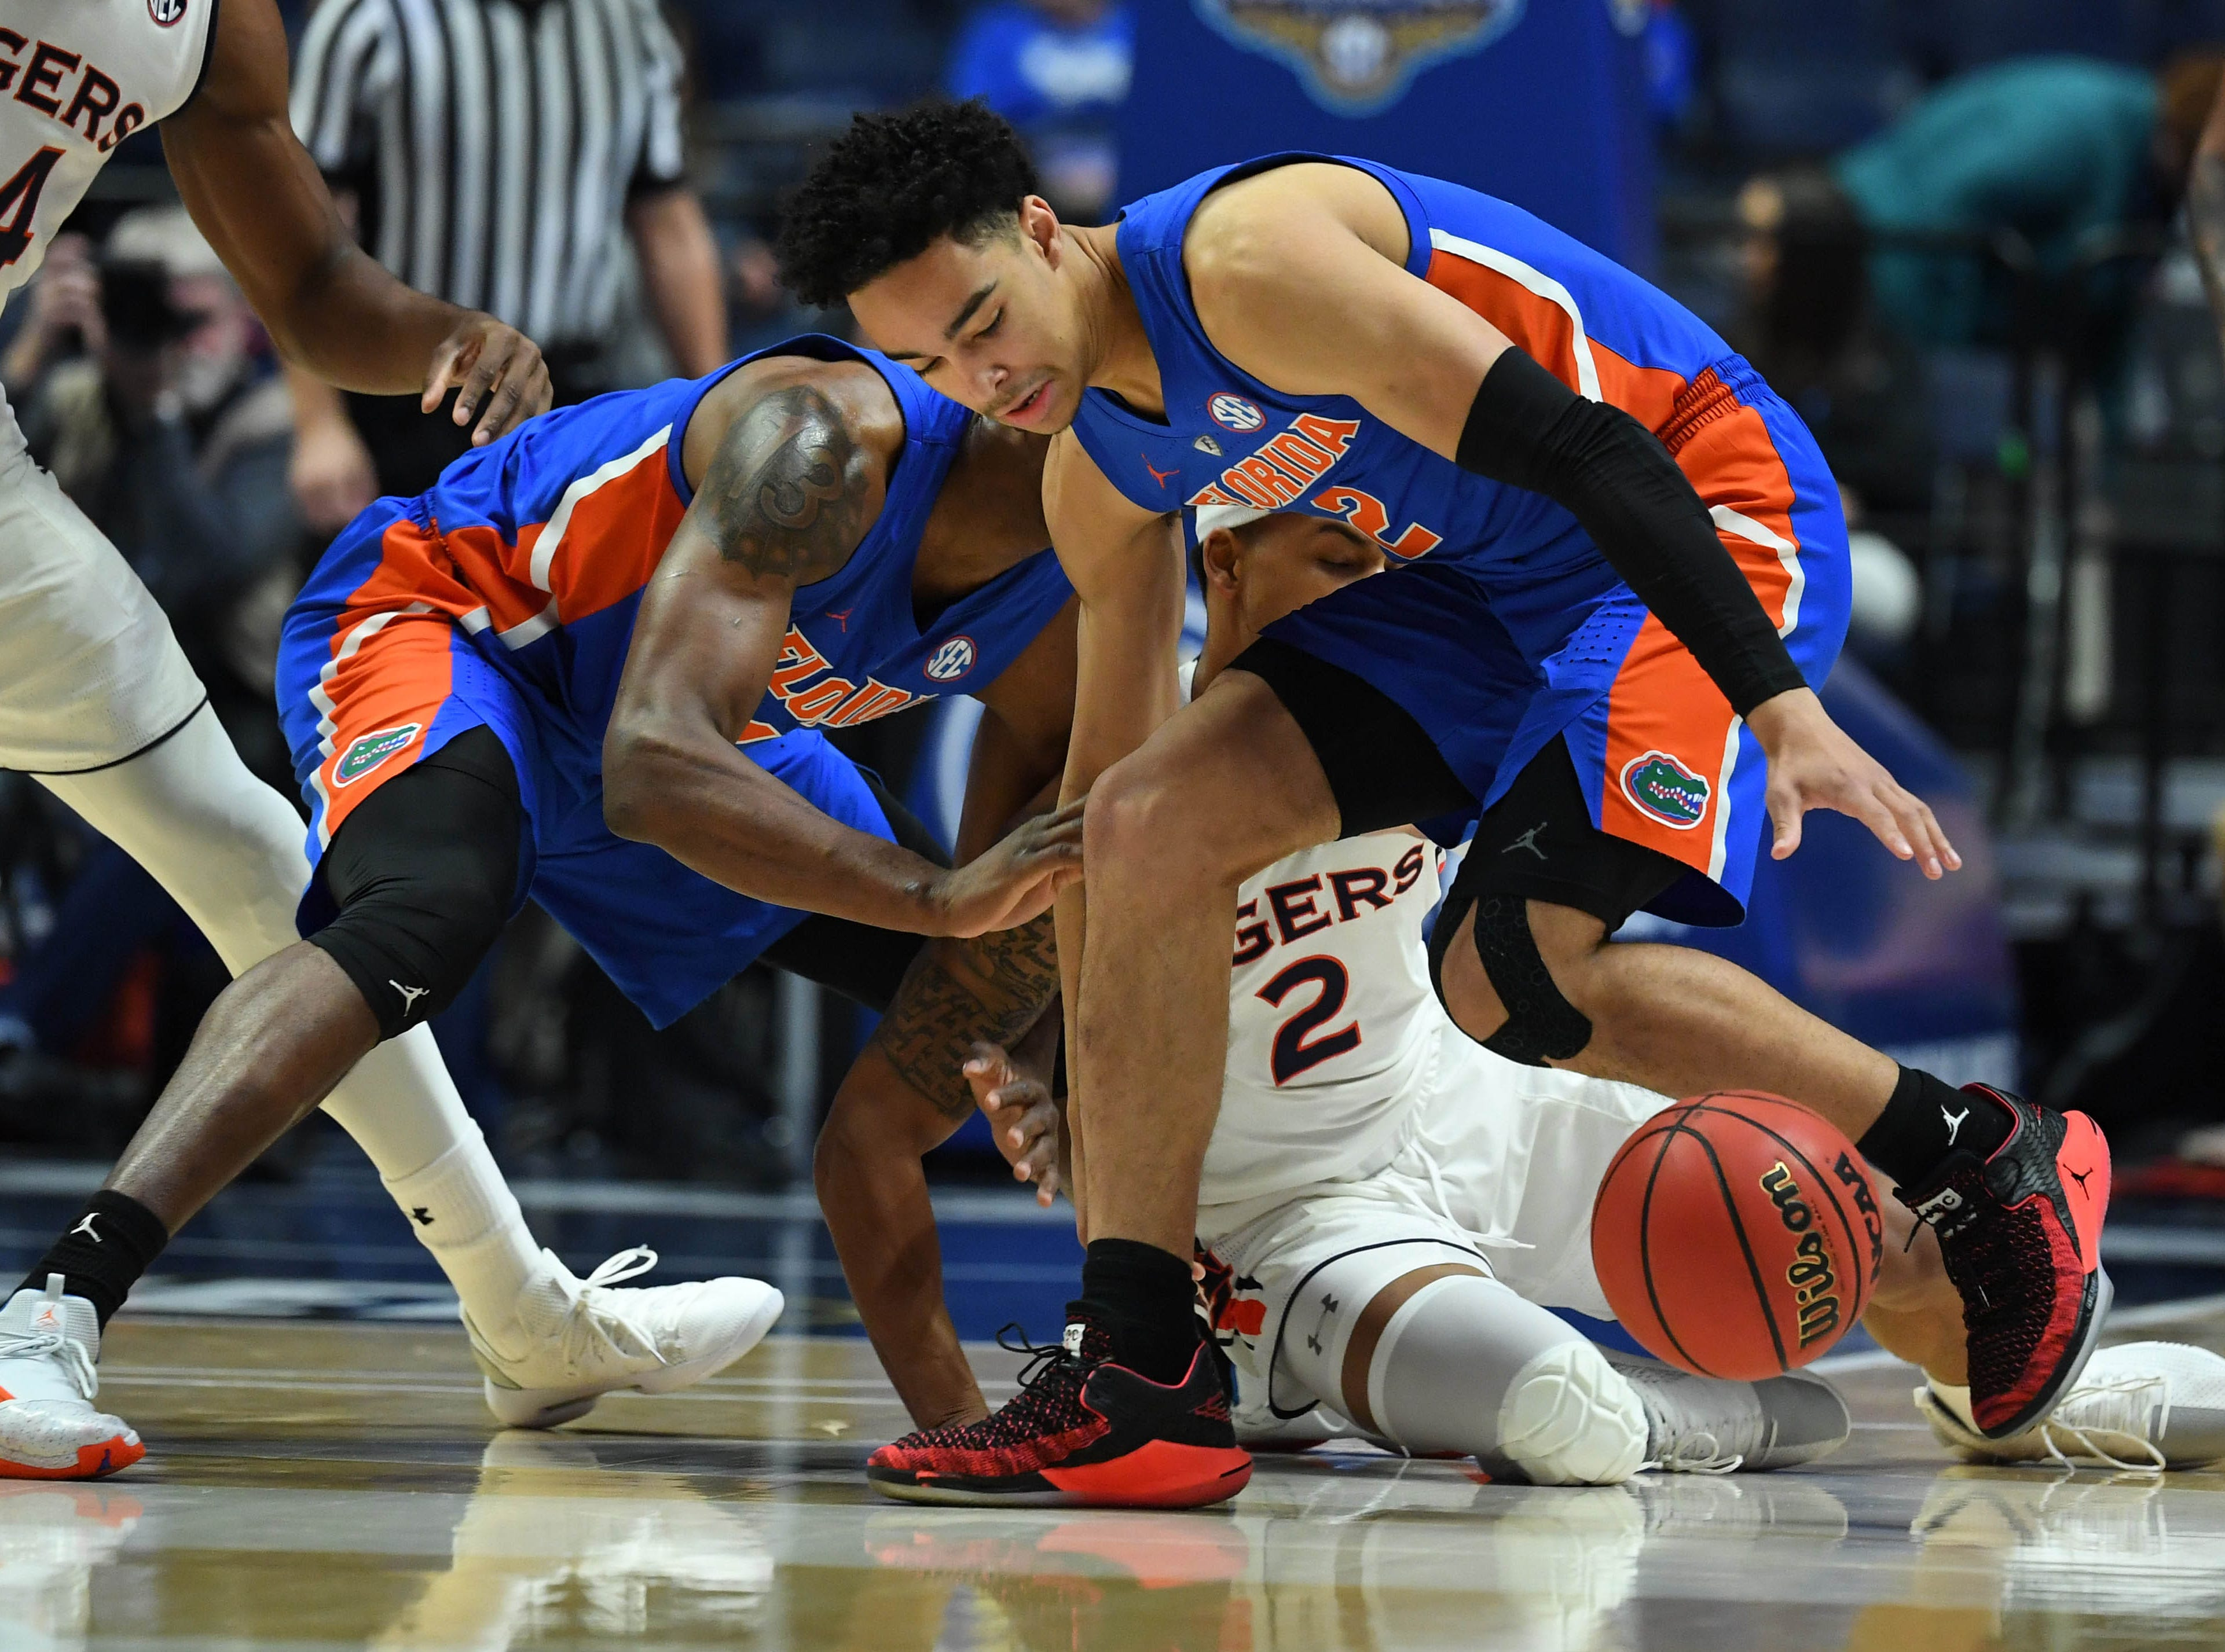 Mar 16, 2019; Nashville, TN, USA; Florida Gators guard Andrew Nembhard (2) chases after the ball following a steal attempt from Auburn Tigers guard Bryce Brown (2) during the first half  of the SEC conference tournament at Bridgestone Arena. Mandatory Credit: Christopher Hanewinckel-USA TODAY Sports